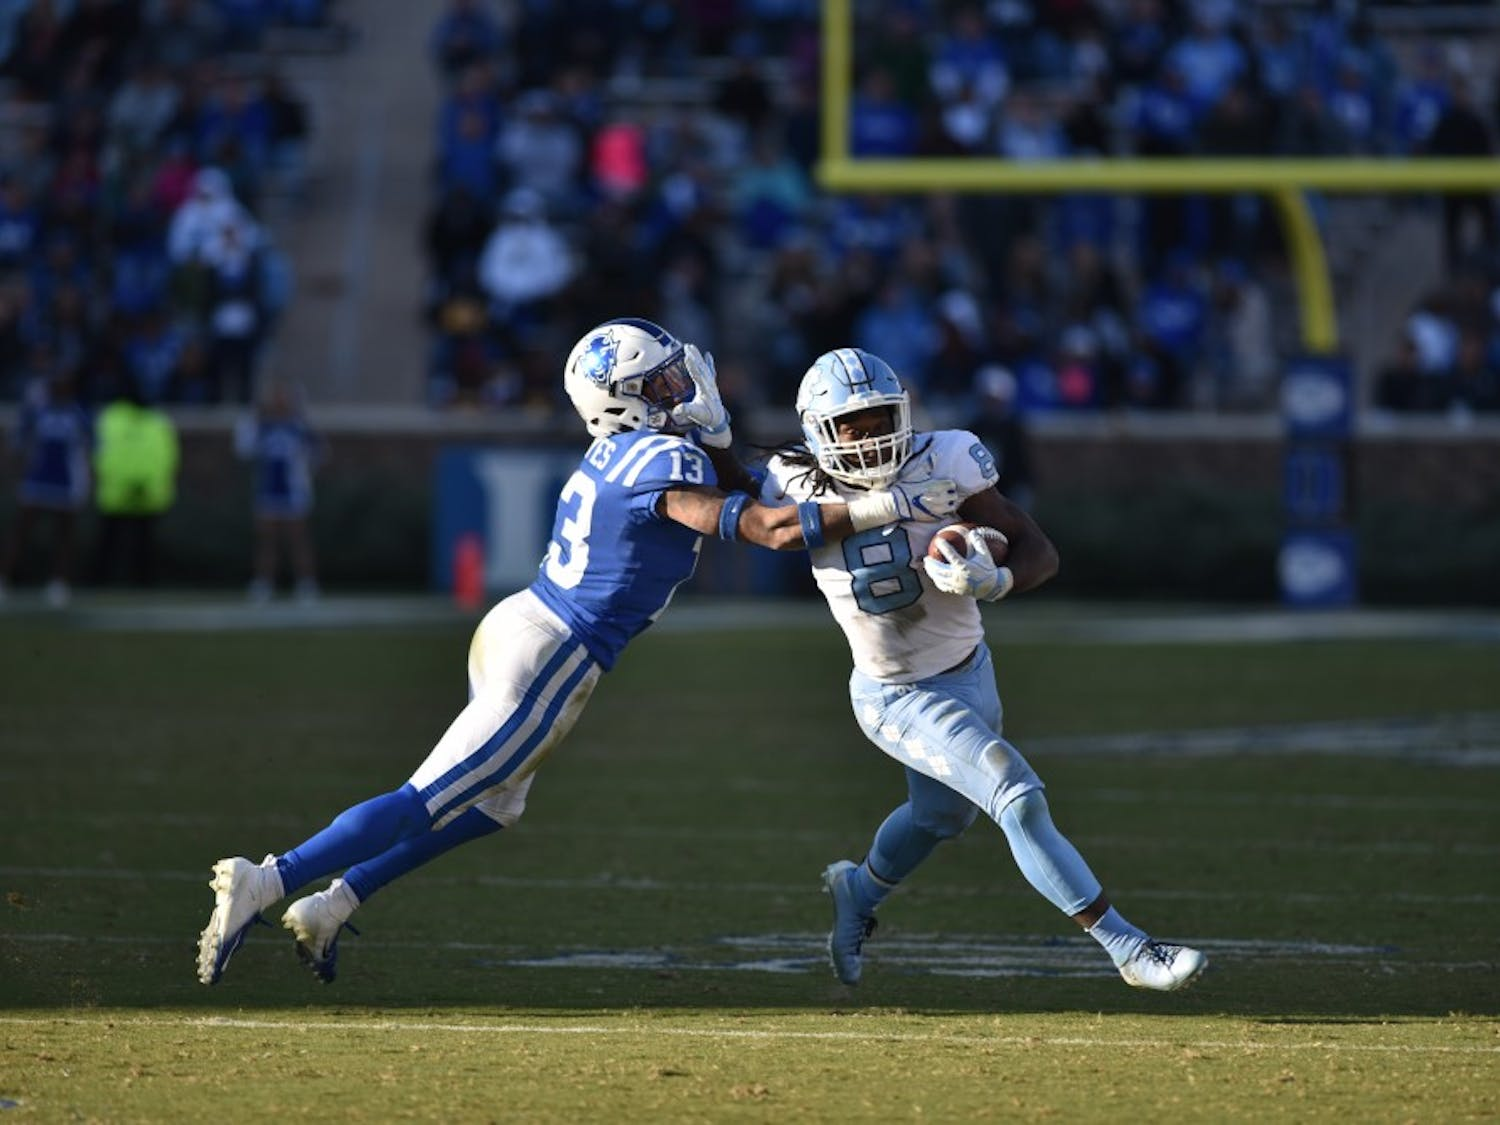 Sophomore tailback Michael Carter (8) stiff arms a Duke defender. Duke defeated UNC 42-35 on Saturday Nov 10 at Wallace Wade Stadium in Durham.